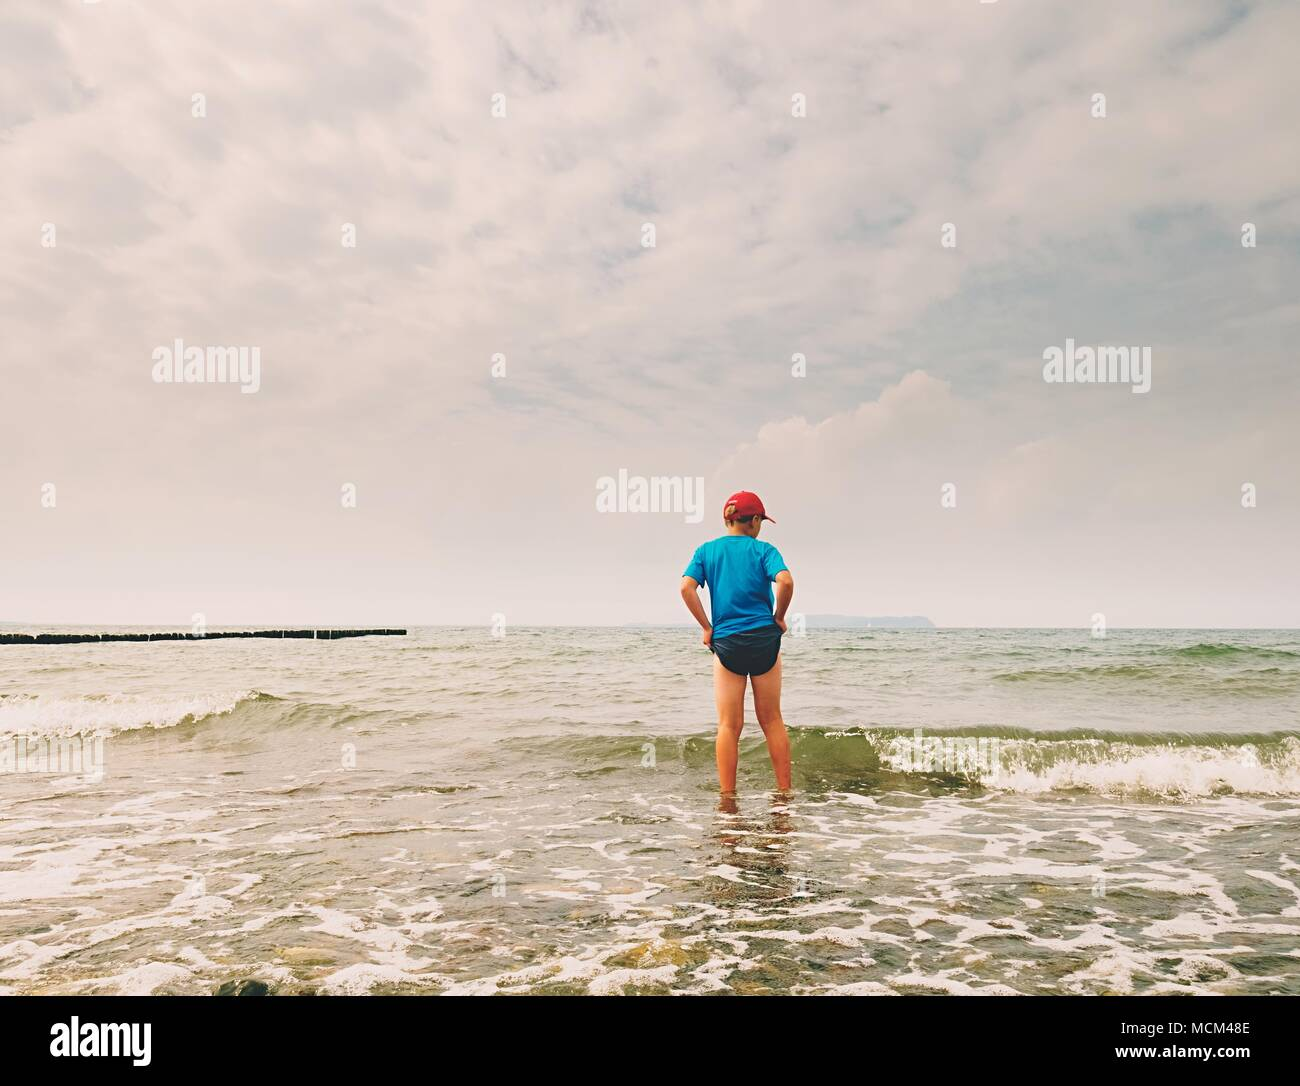 Children on the beach go into the ocean. Kid play in the waves of foamy sea. - Stock Image